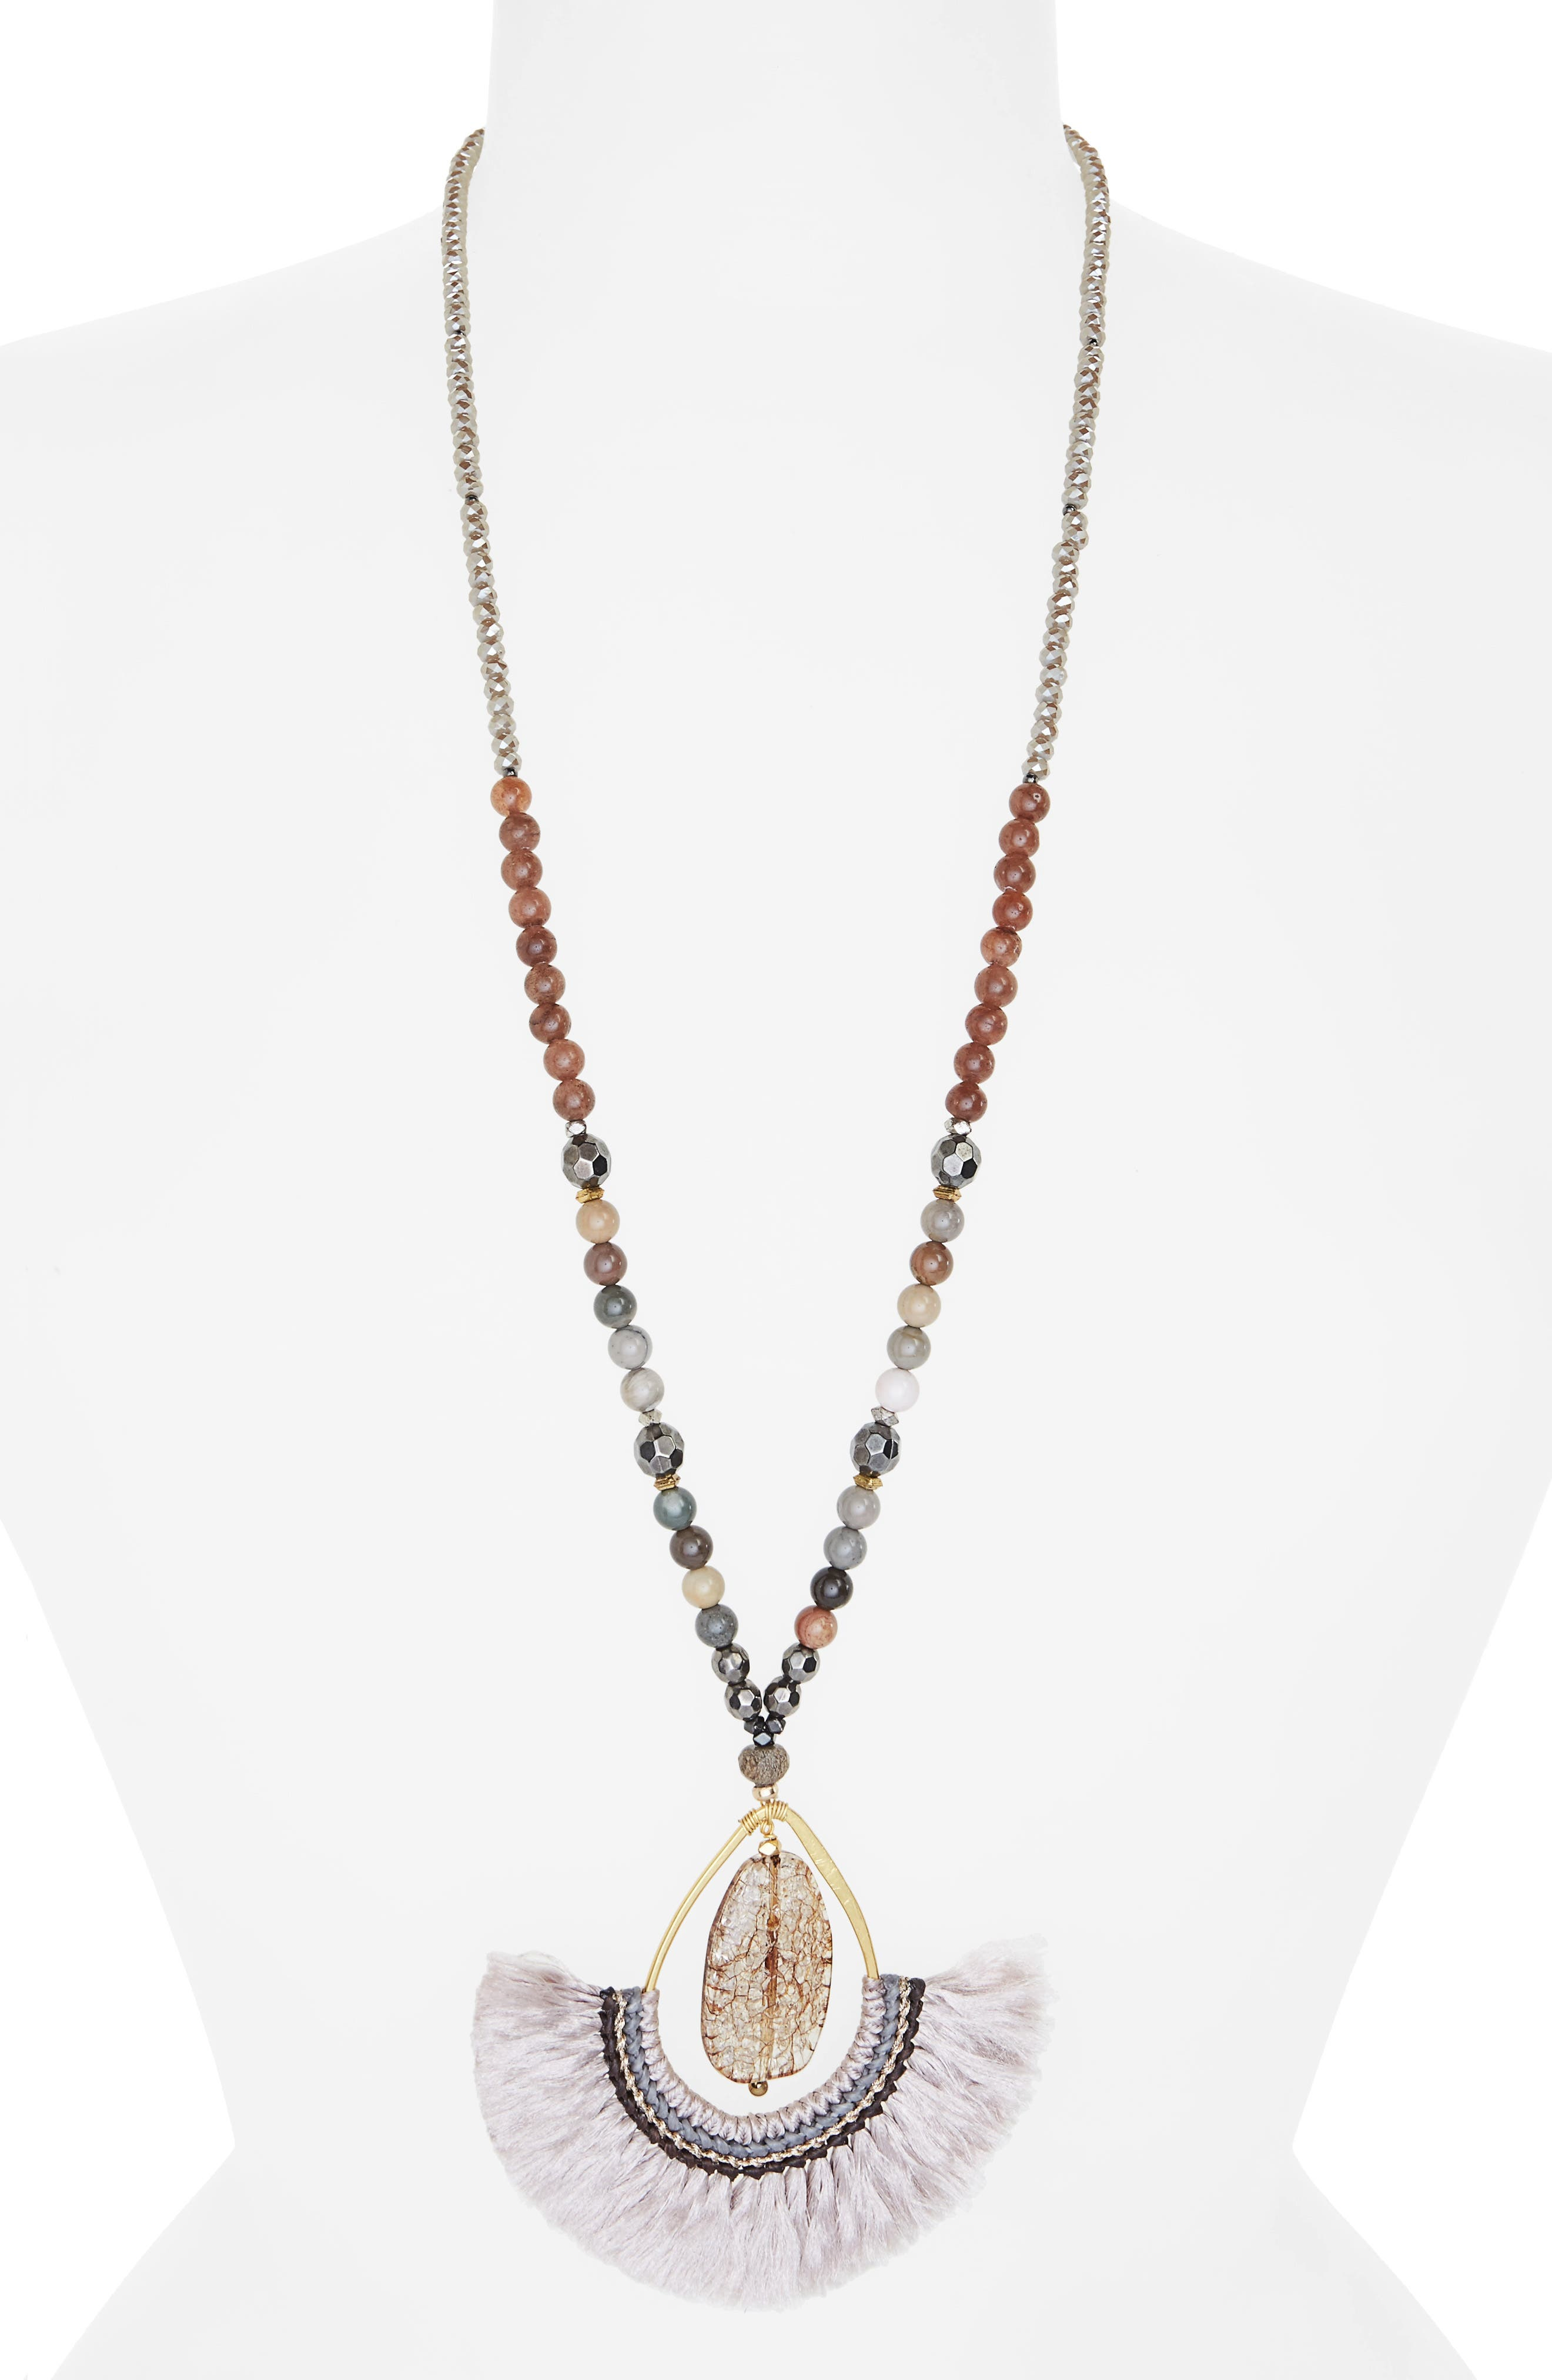 Fringed Agate Teardrop Pendant Necklace,                         Main,                         color, 250